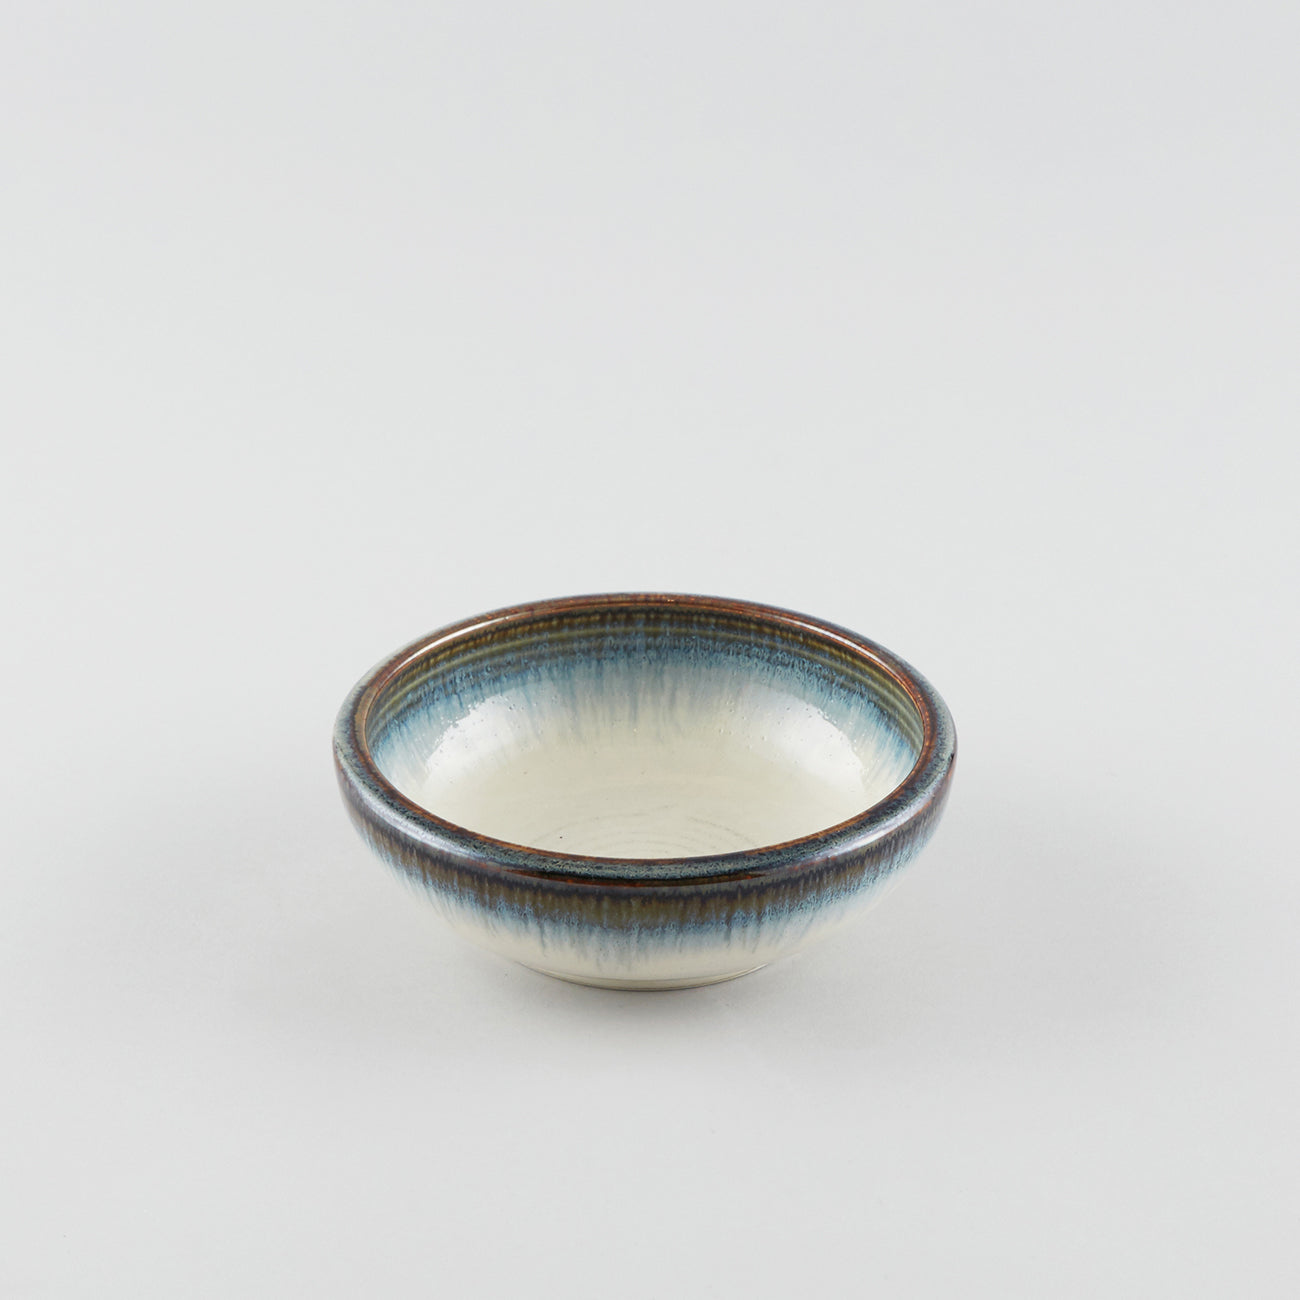 Earth White with Blue Tint Rim - Round Bowl